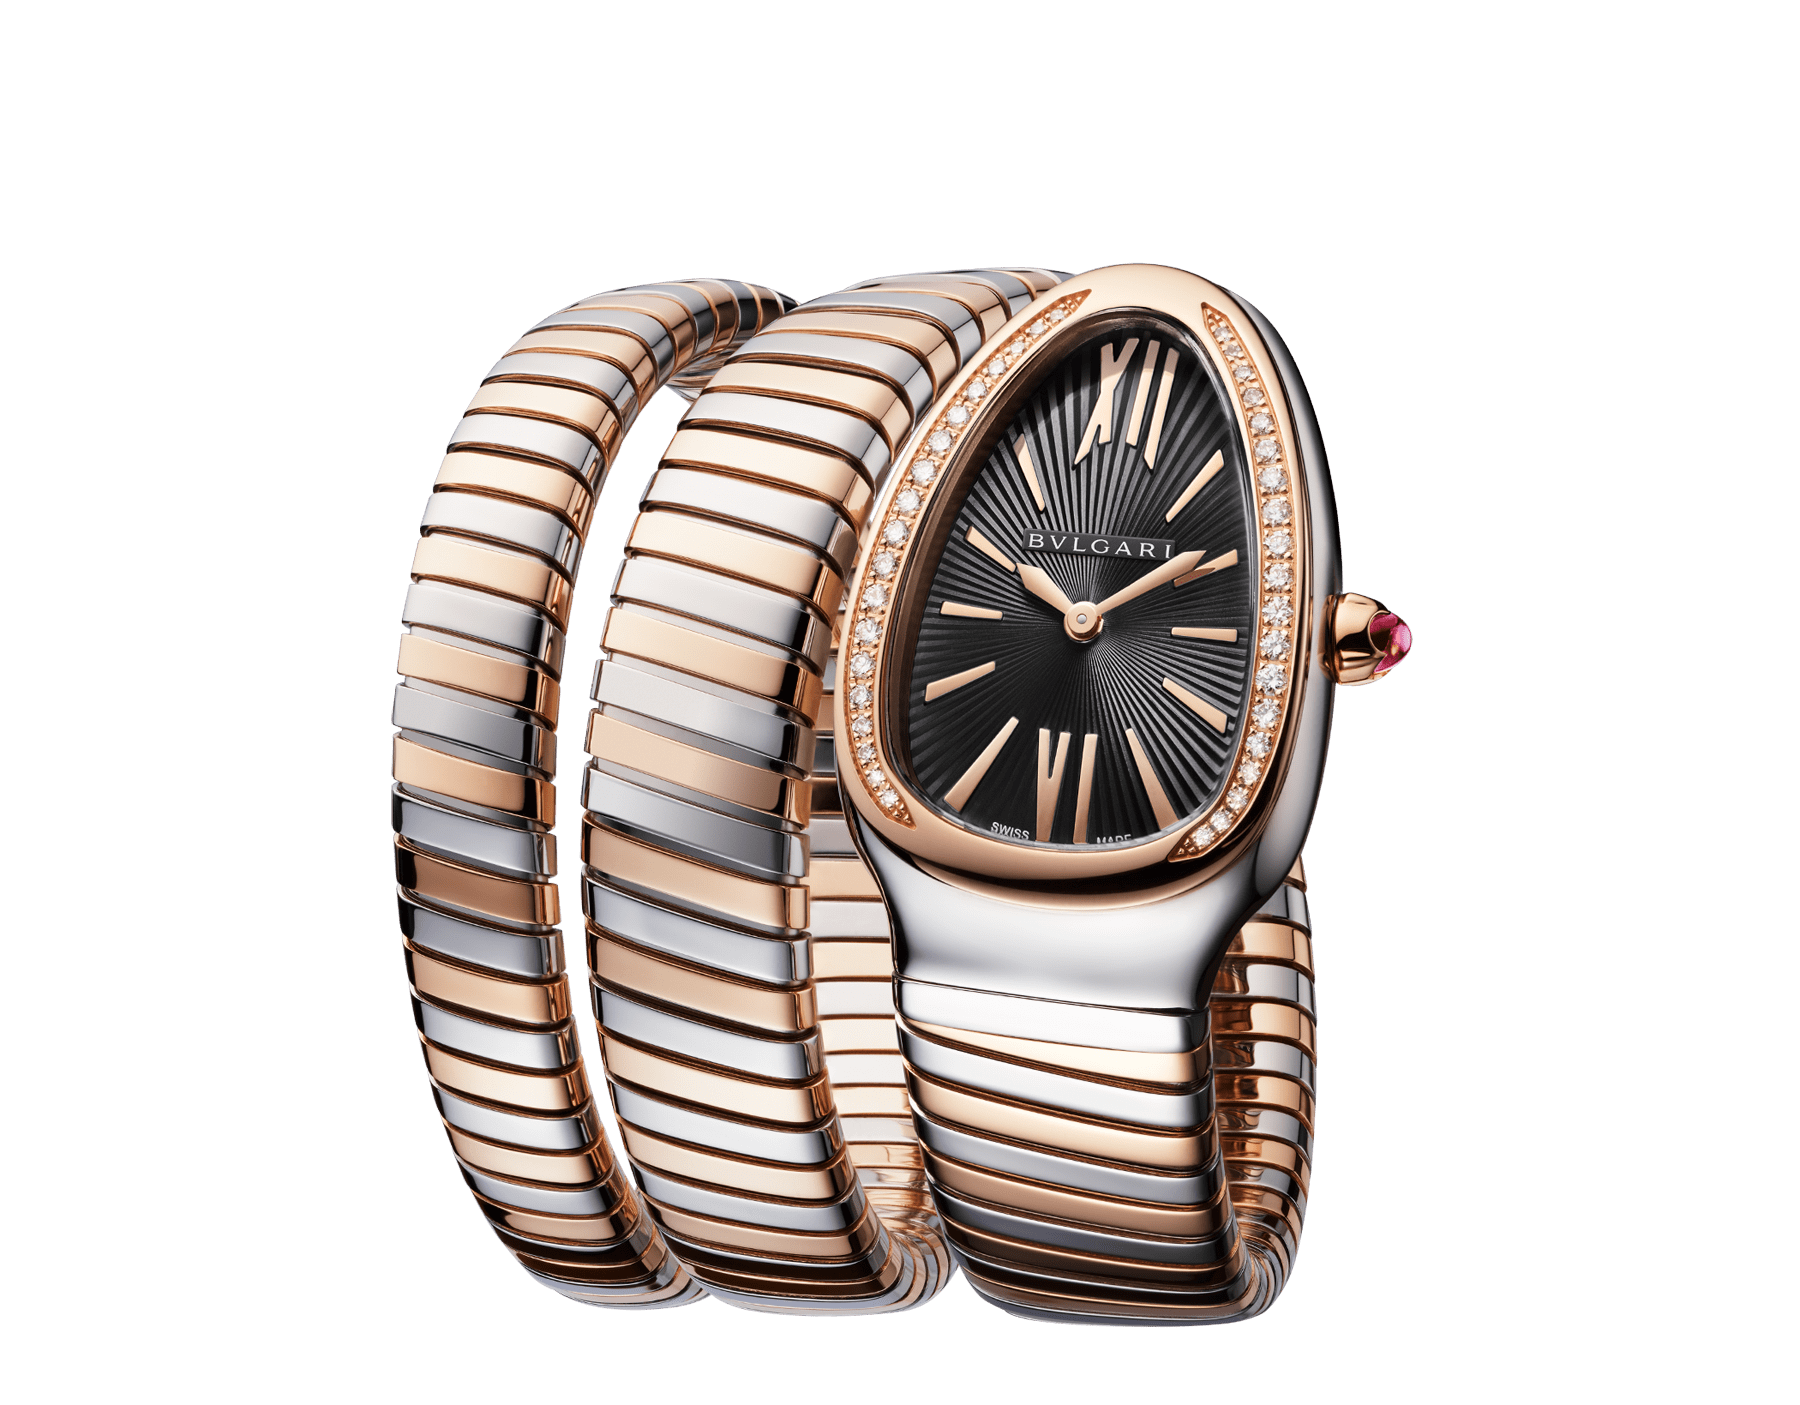 Serpenti Tubogas double spiral watch with stainless steel case, 18 kt rose gold bezel set with brilliant cut diamonds, black opaline dial, 18 kt rose gold and stainless steel bracelet. 102099 image 2